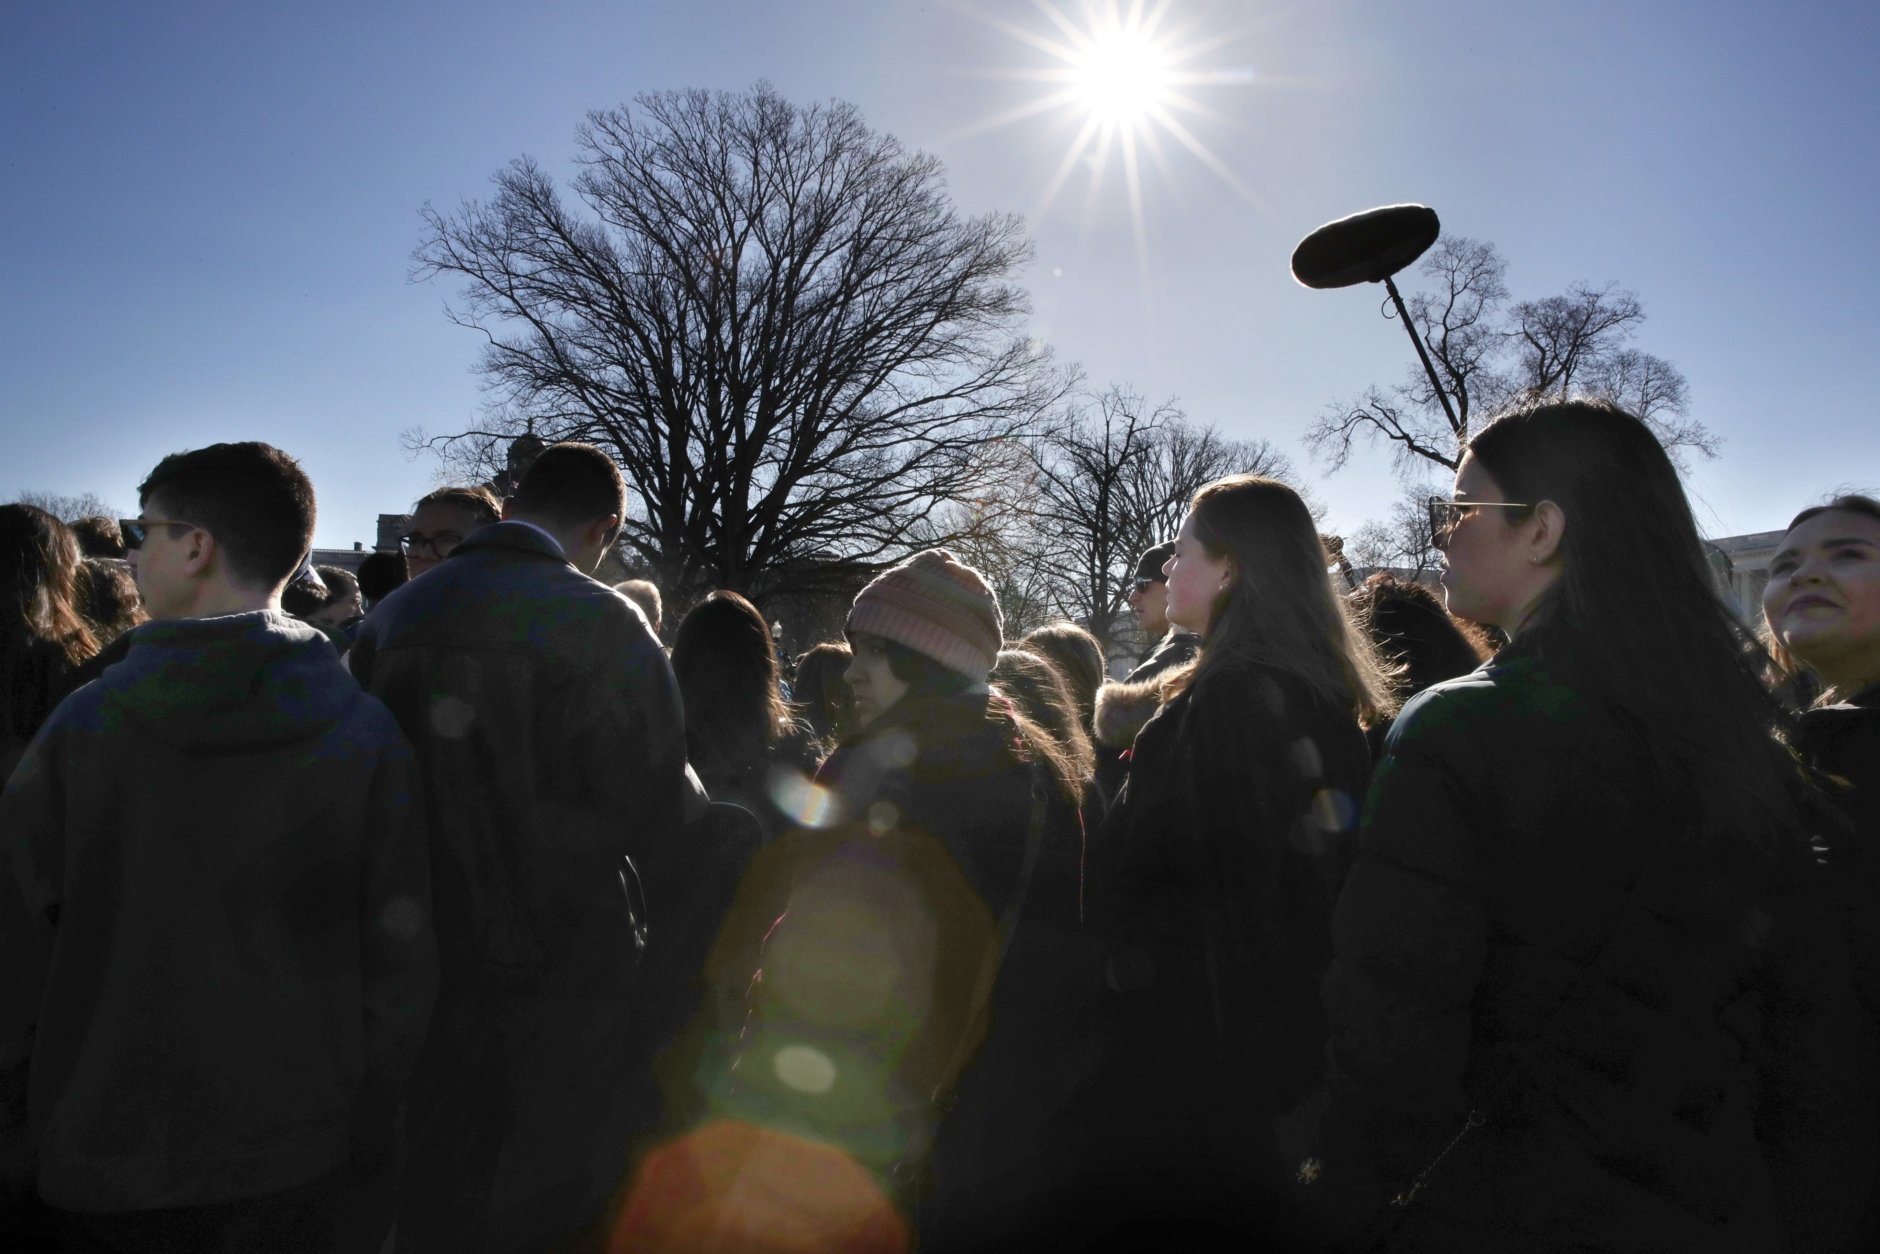 Students from Marjory Stoneman Douglas High School in Parkland, Fla., attend a news conference about gun violence, Friday, March 23, 2018, on Capitol Hill in Washington, ahead of the Saturday March For Our Lives. (AP Photo/Jacquelyn Martin)